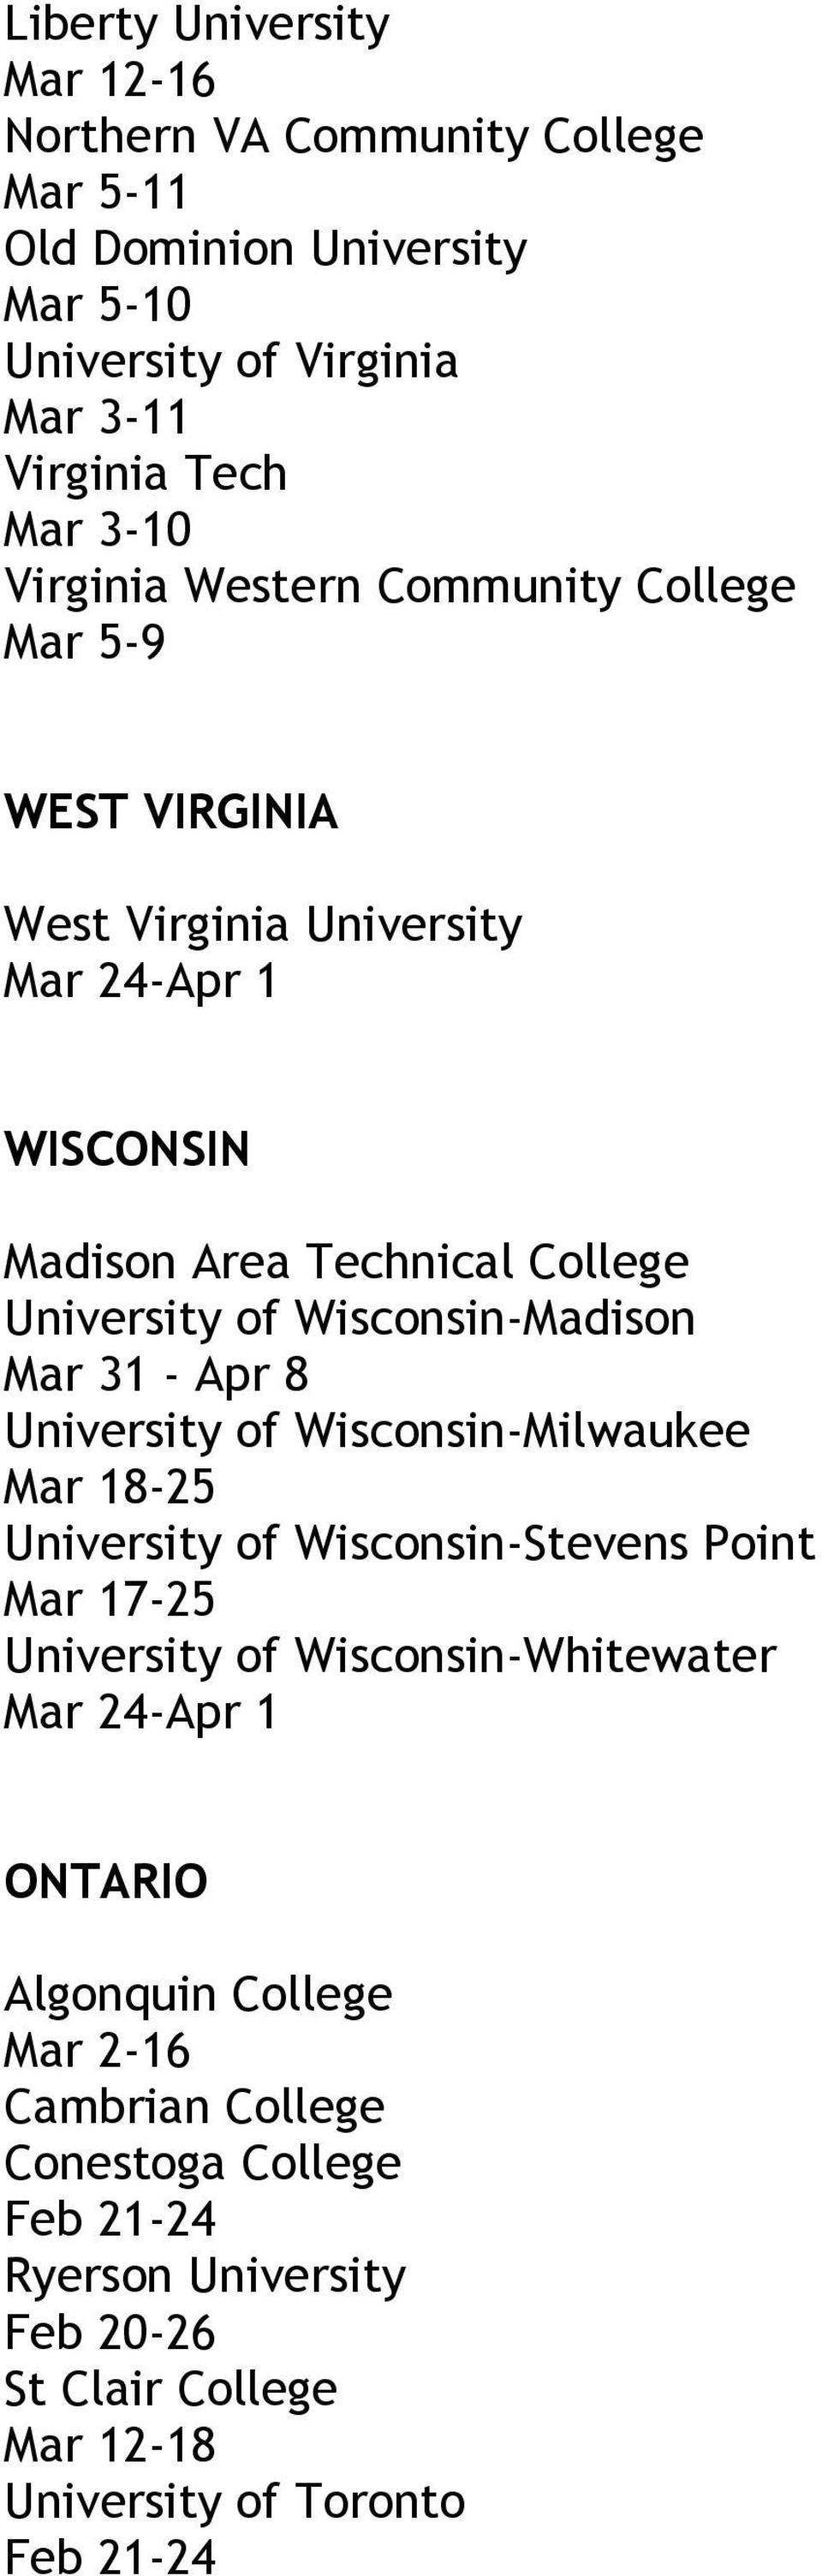 University of Wisconsin-Milwaukee Mar 18-25 University of Wisconsin-Stevens Point Mar 17-25 University of Wisconsin-Whitewater Mar 24-Apr 1 ONTARIO